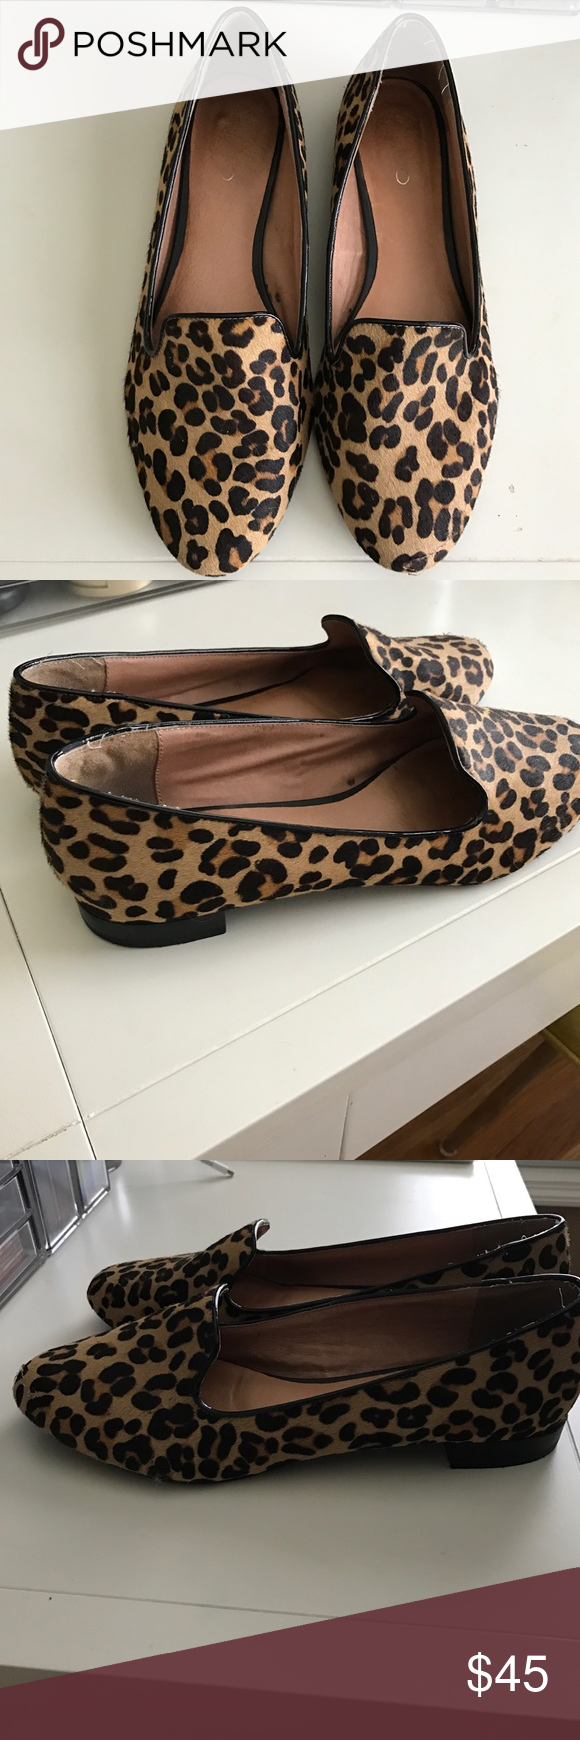 55a8adcc29fd Aldo leopard flats Leopard flats by Aldo, hardly worn in great condition! Aldo  Shoes Flats & Loafers